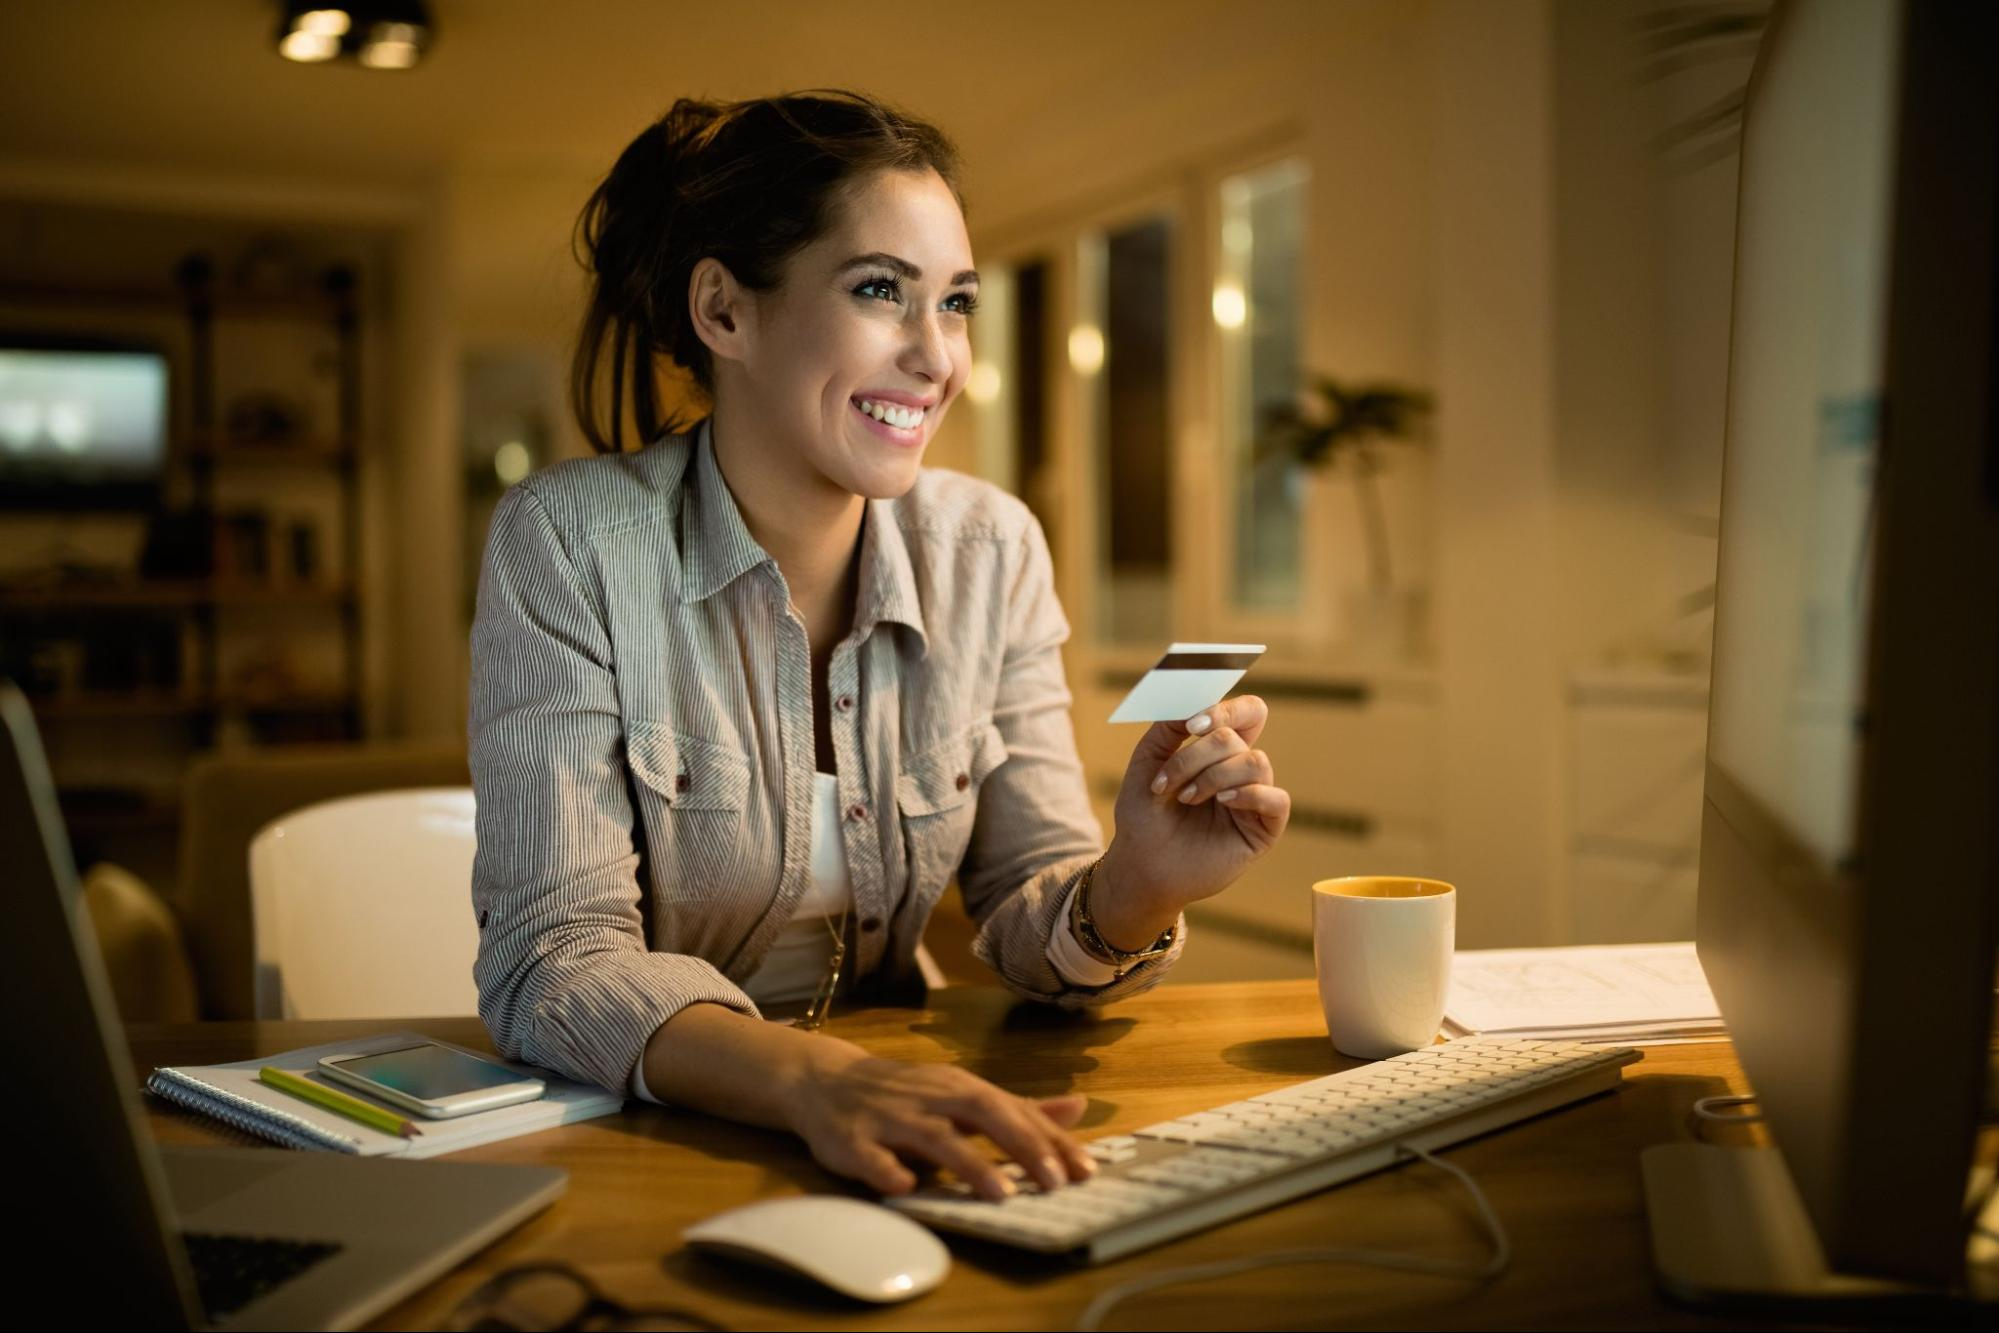 A smiling woman holds a credit card and types on a desktop computer